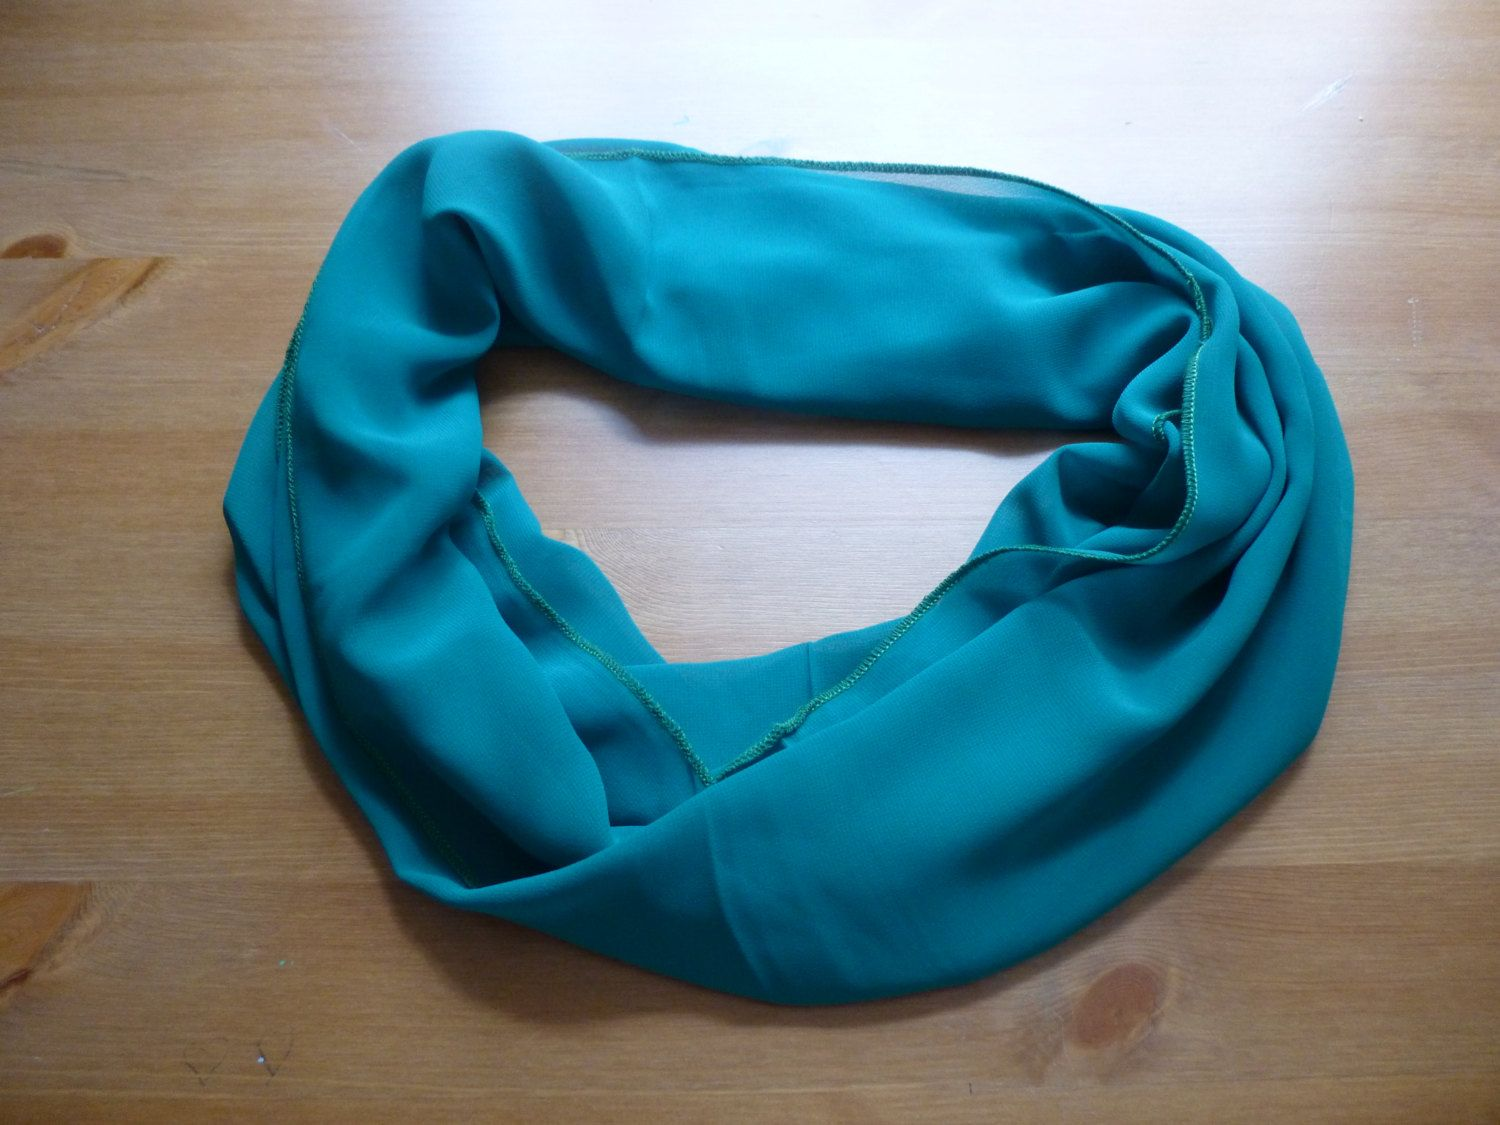 Infinity scarf - summer Fashion scarf, chiffon fabric, soft, gift ideas, for woman, woman scarves #woman#